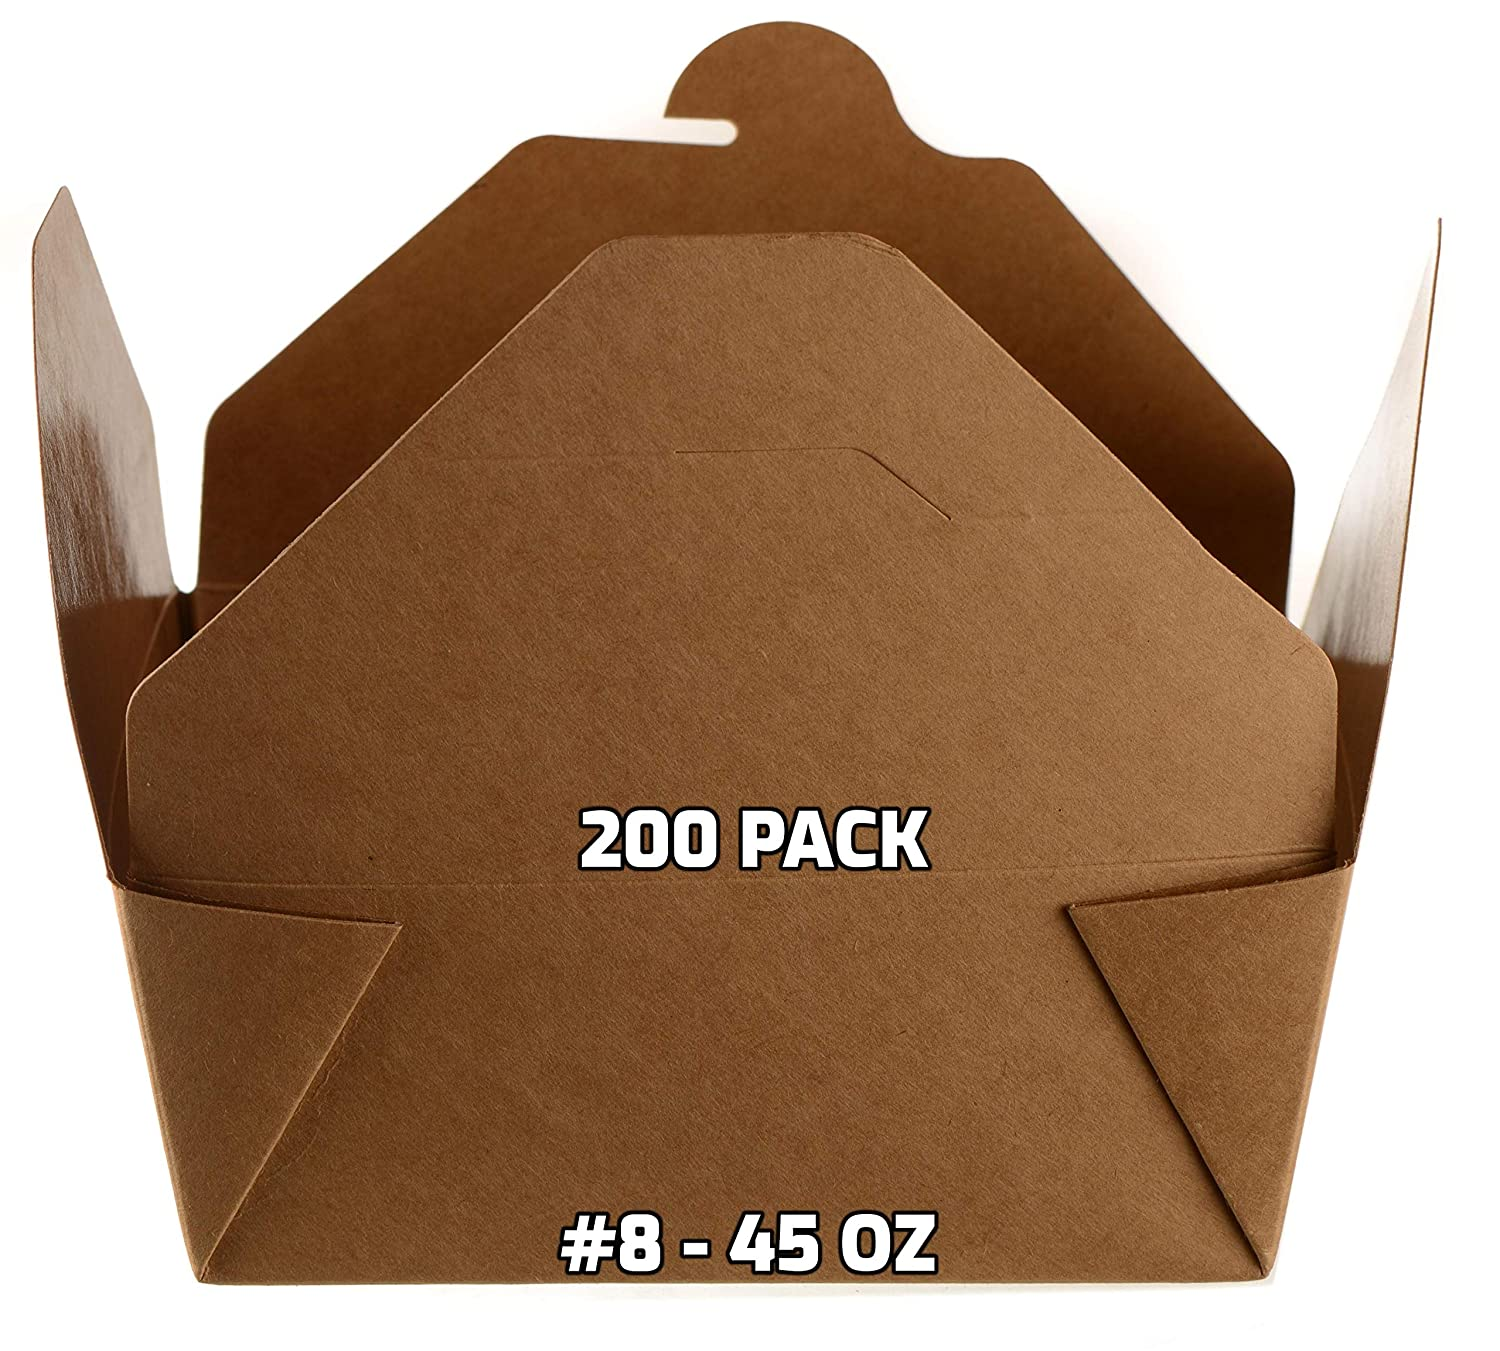 [200 PACK] Take Out Food Containers 45 oz Kraft Brown Paper Take